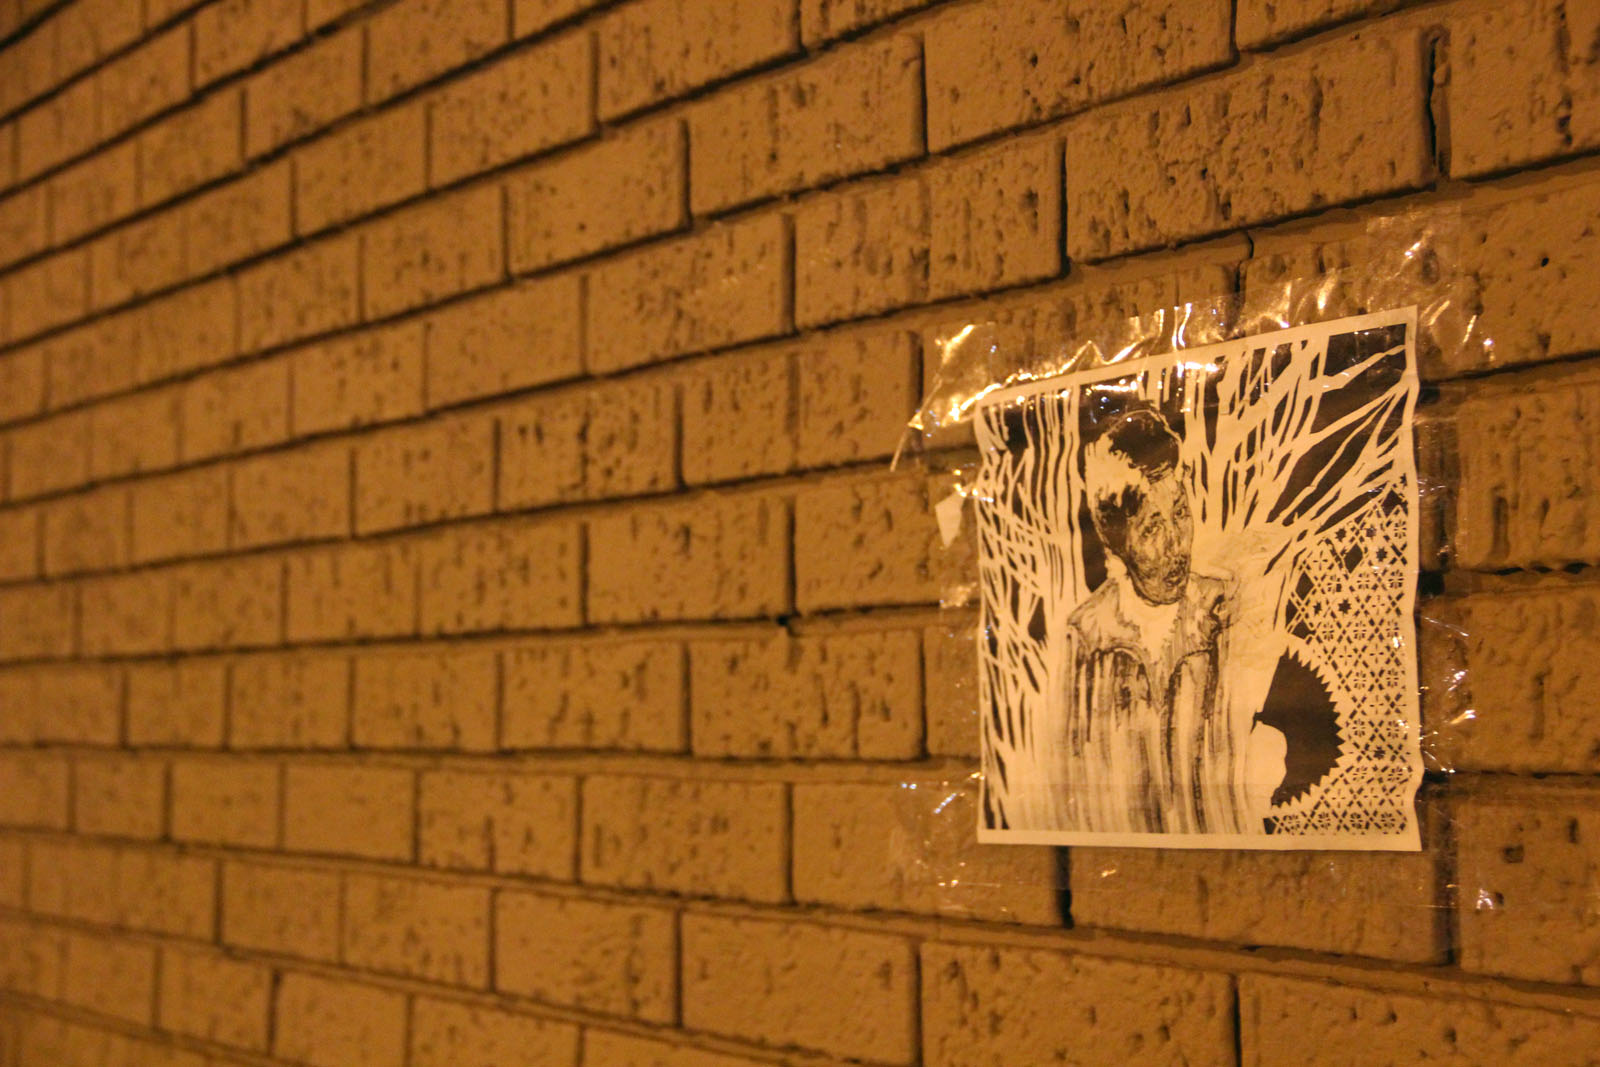 A small copy commemorating Swoon's piece is all that remains on the outside wall of Tony's Market at 24th Street and Hampshire.